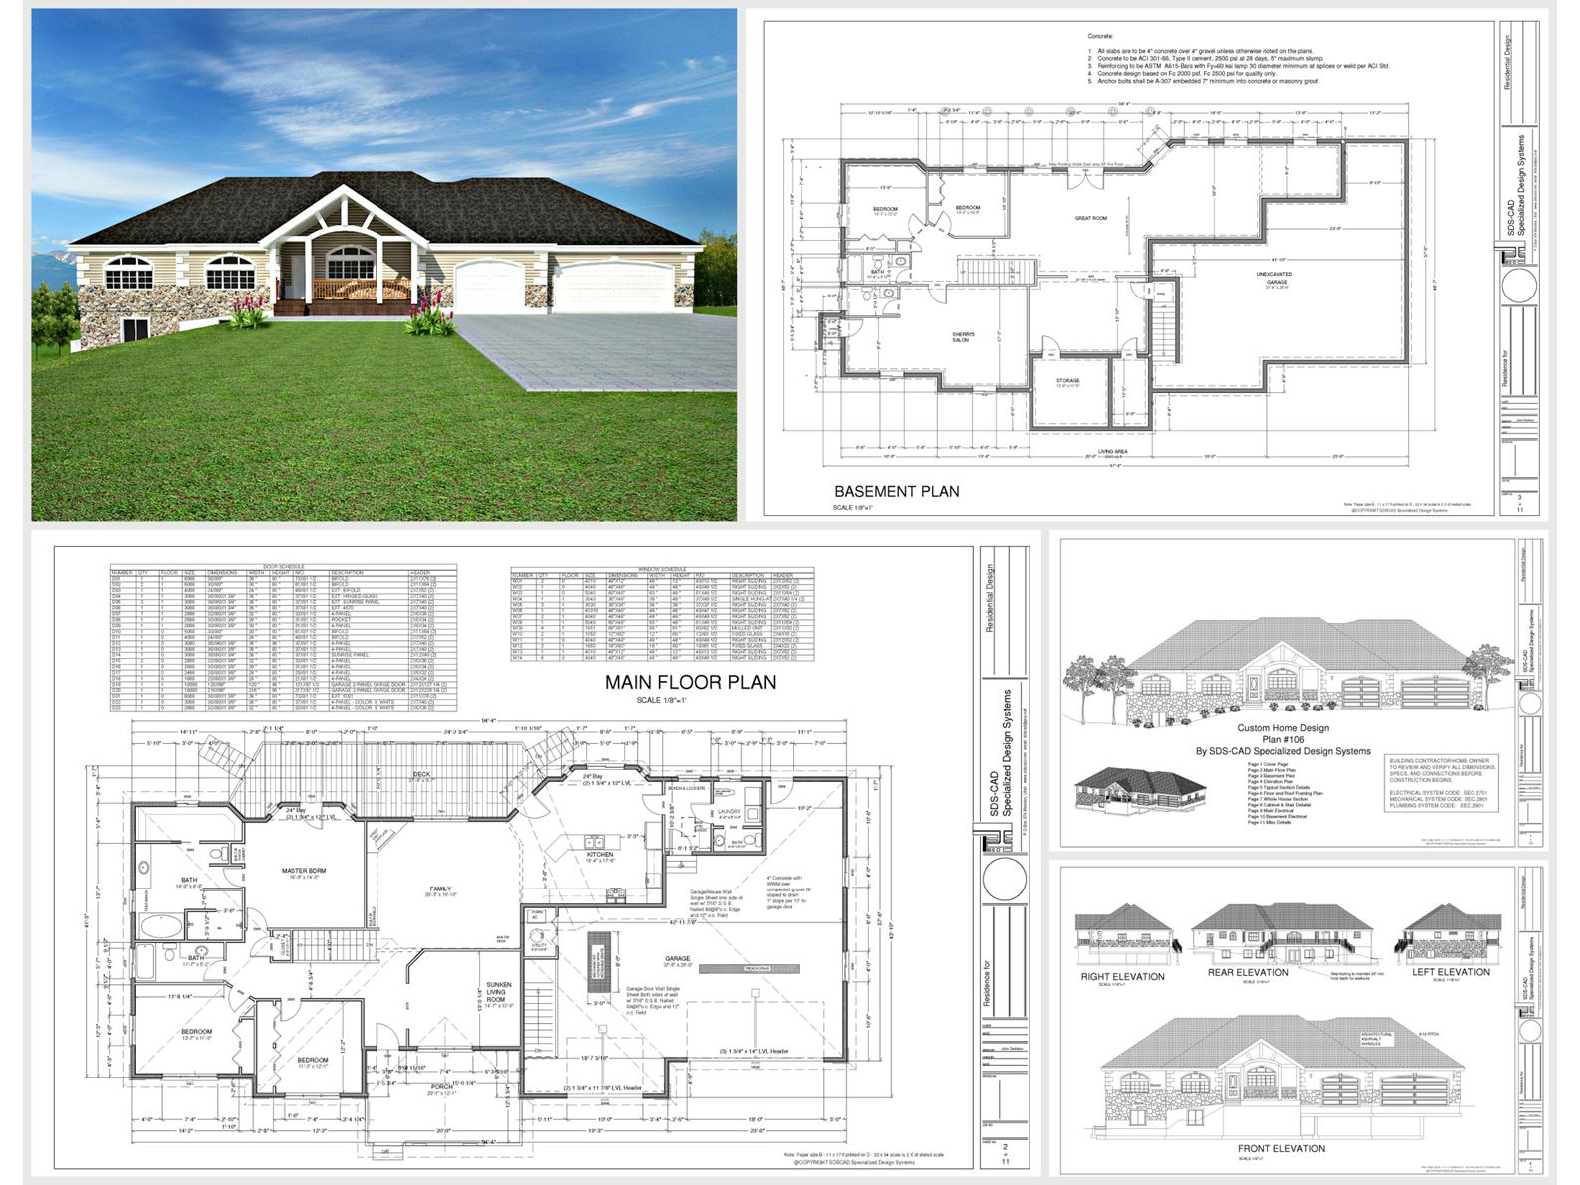 100 house plans catalog page 018 9 plans for House design pdf